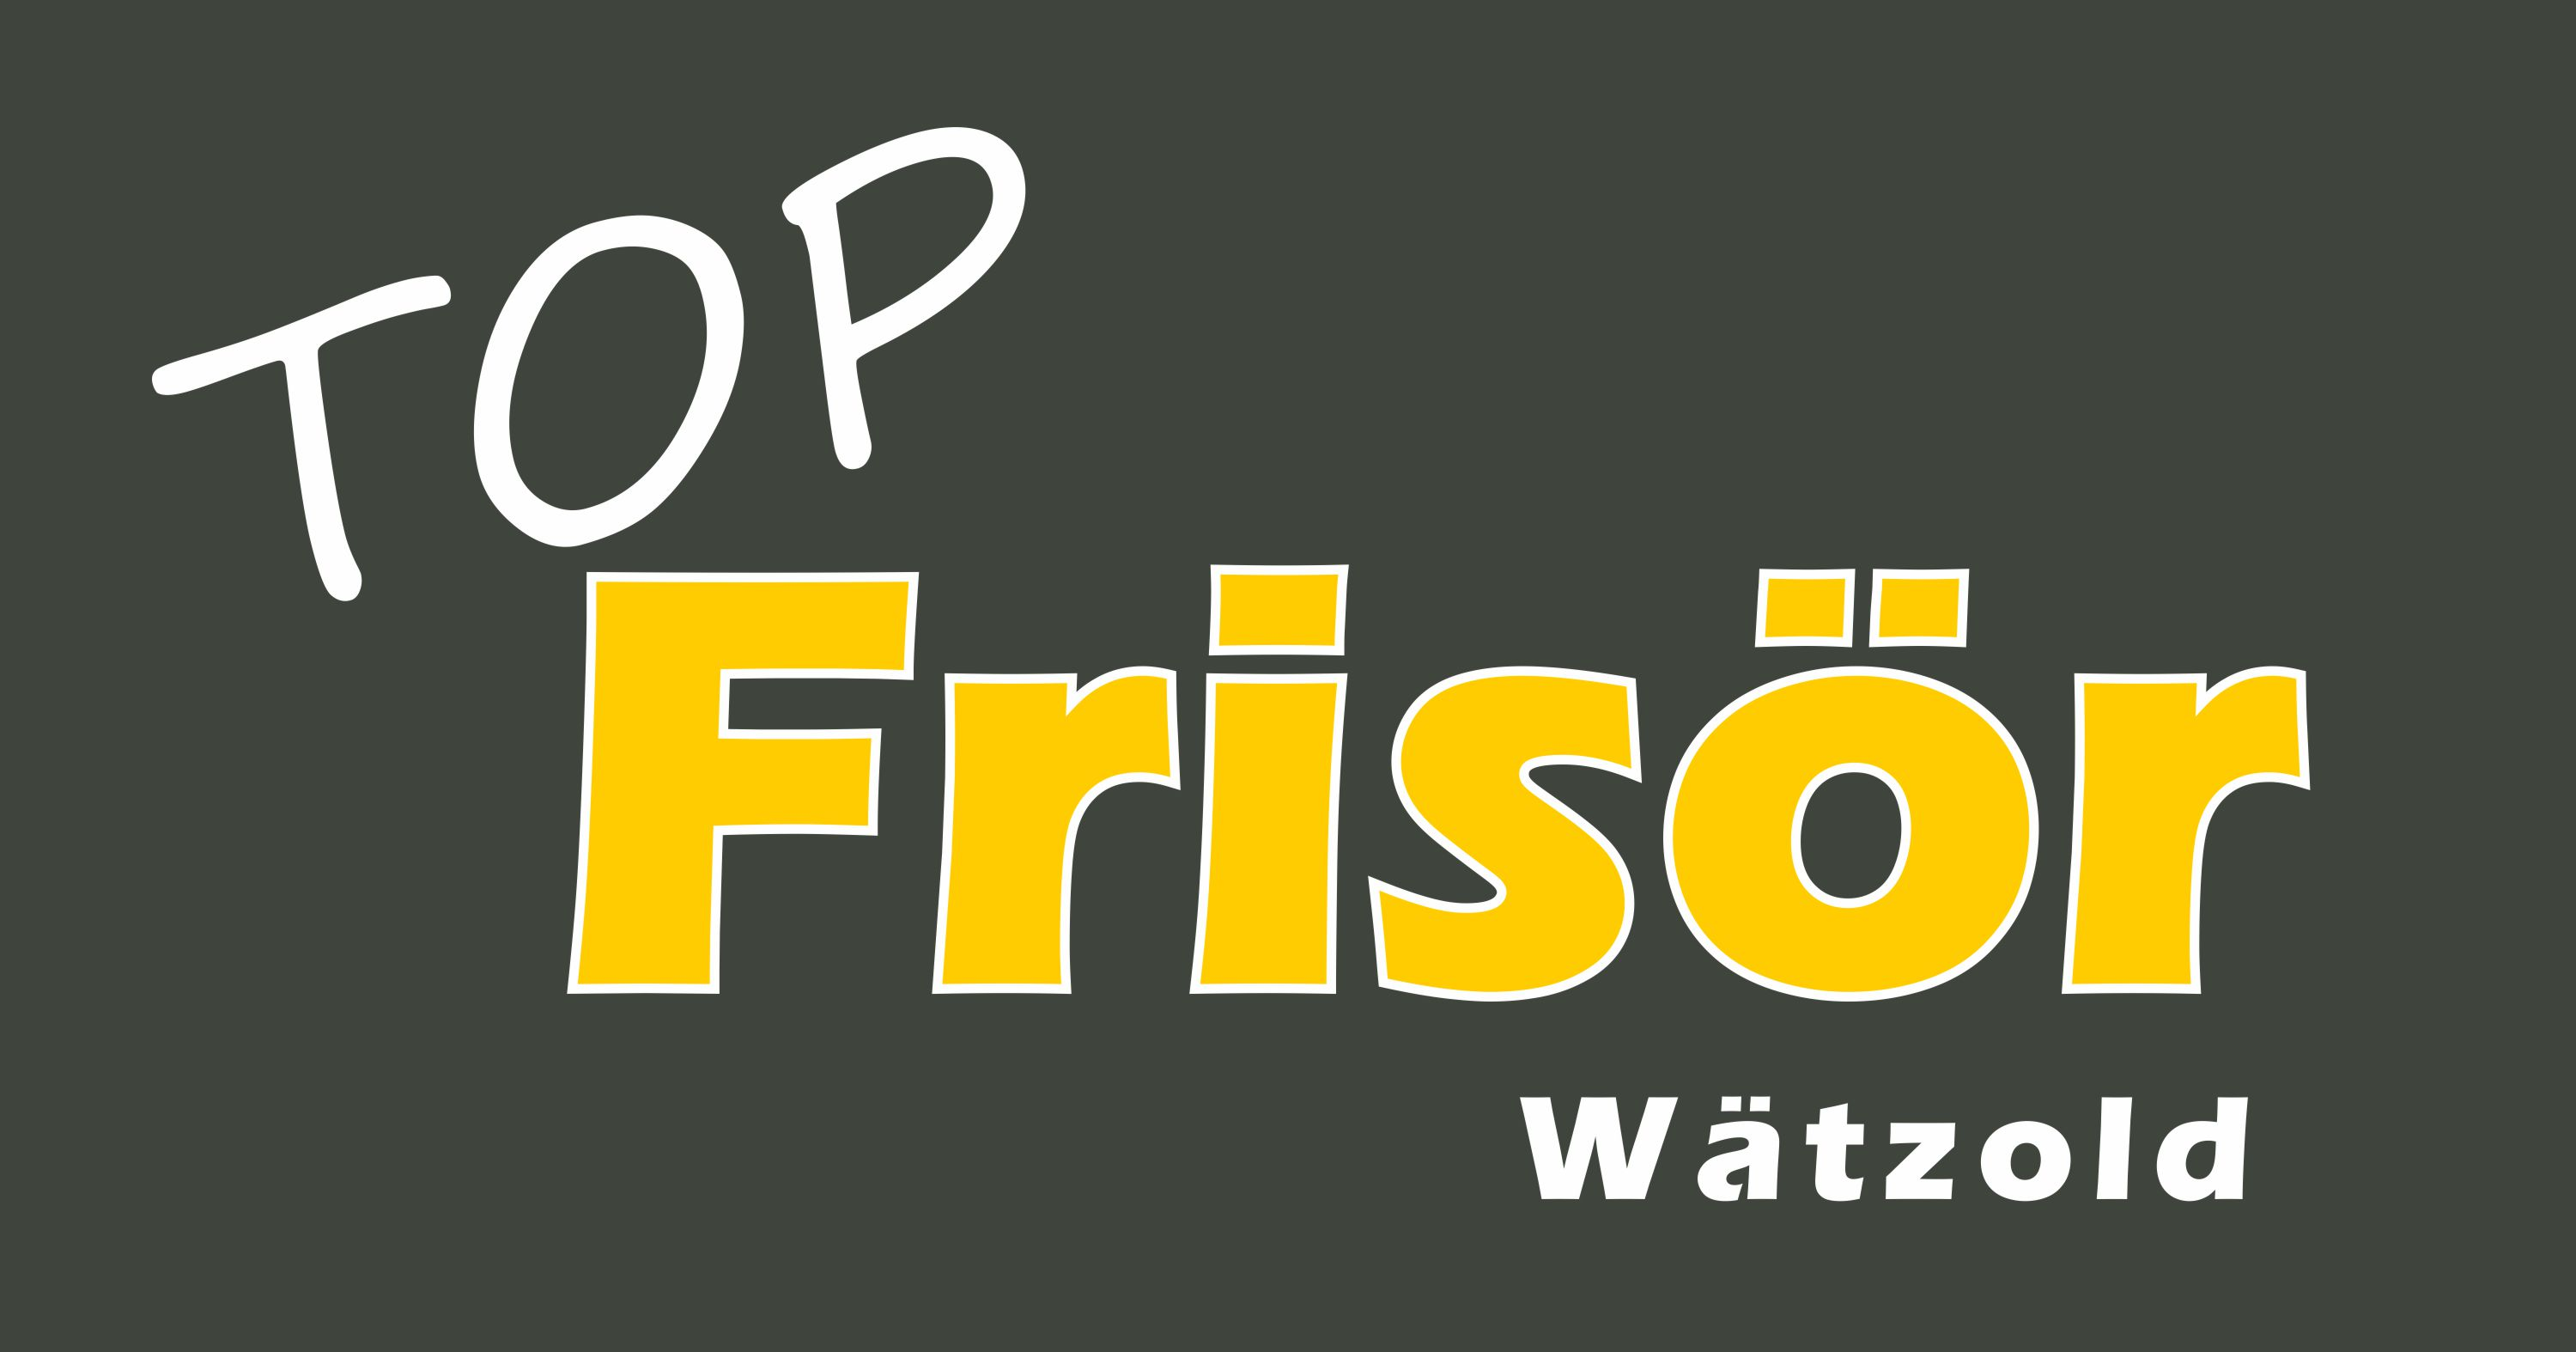 Top Frisör Wätzold in Berlin Marzahn